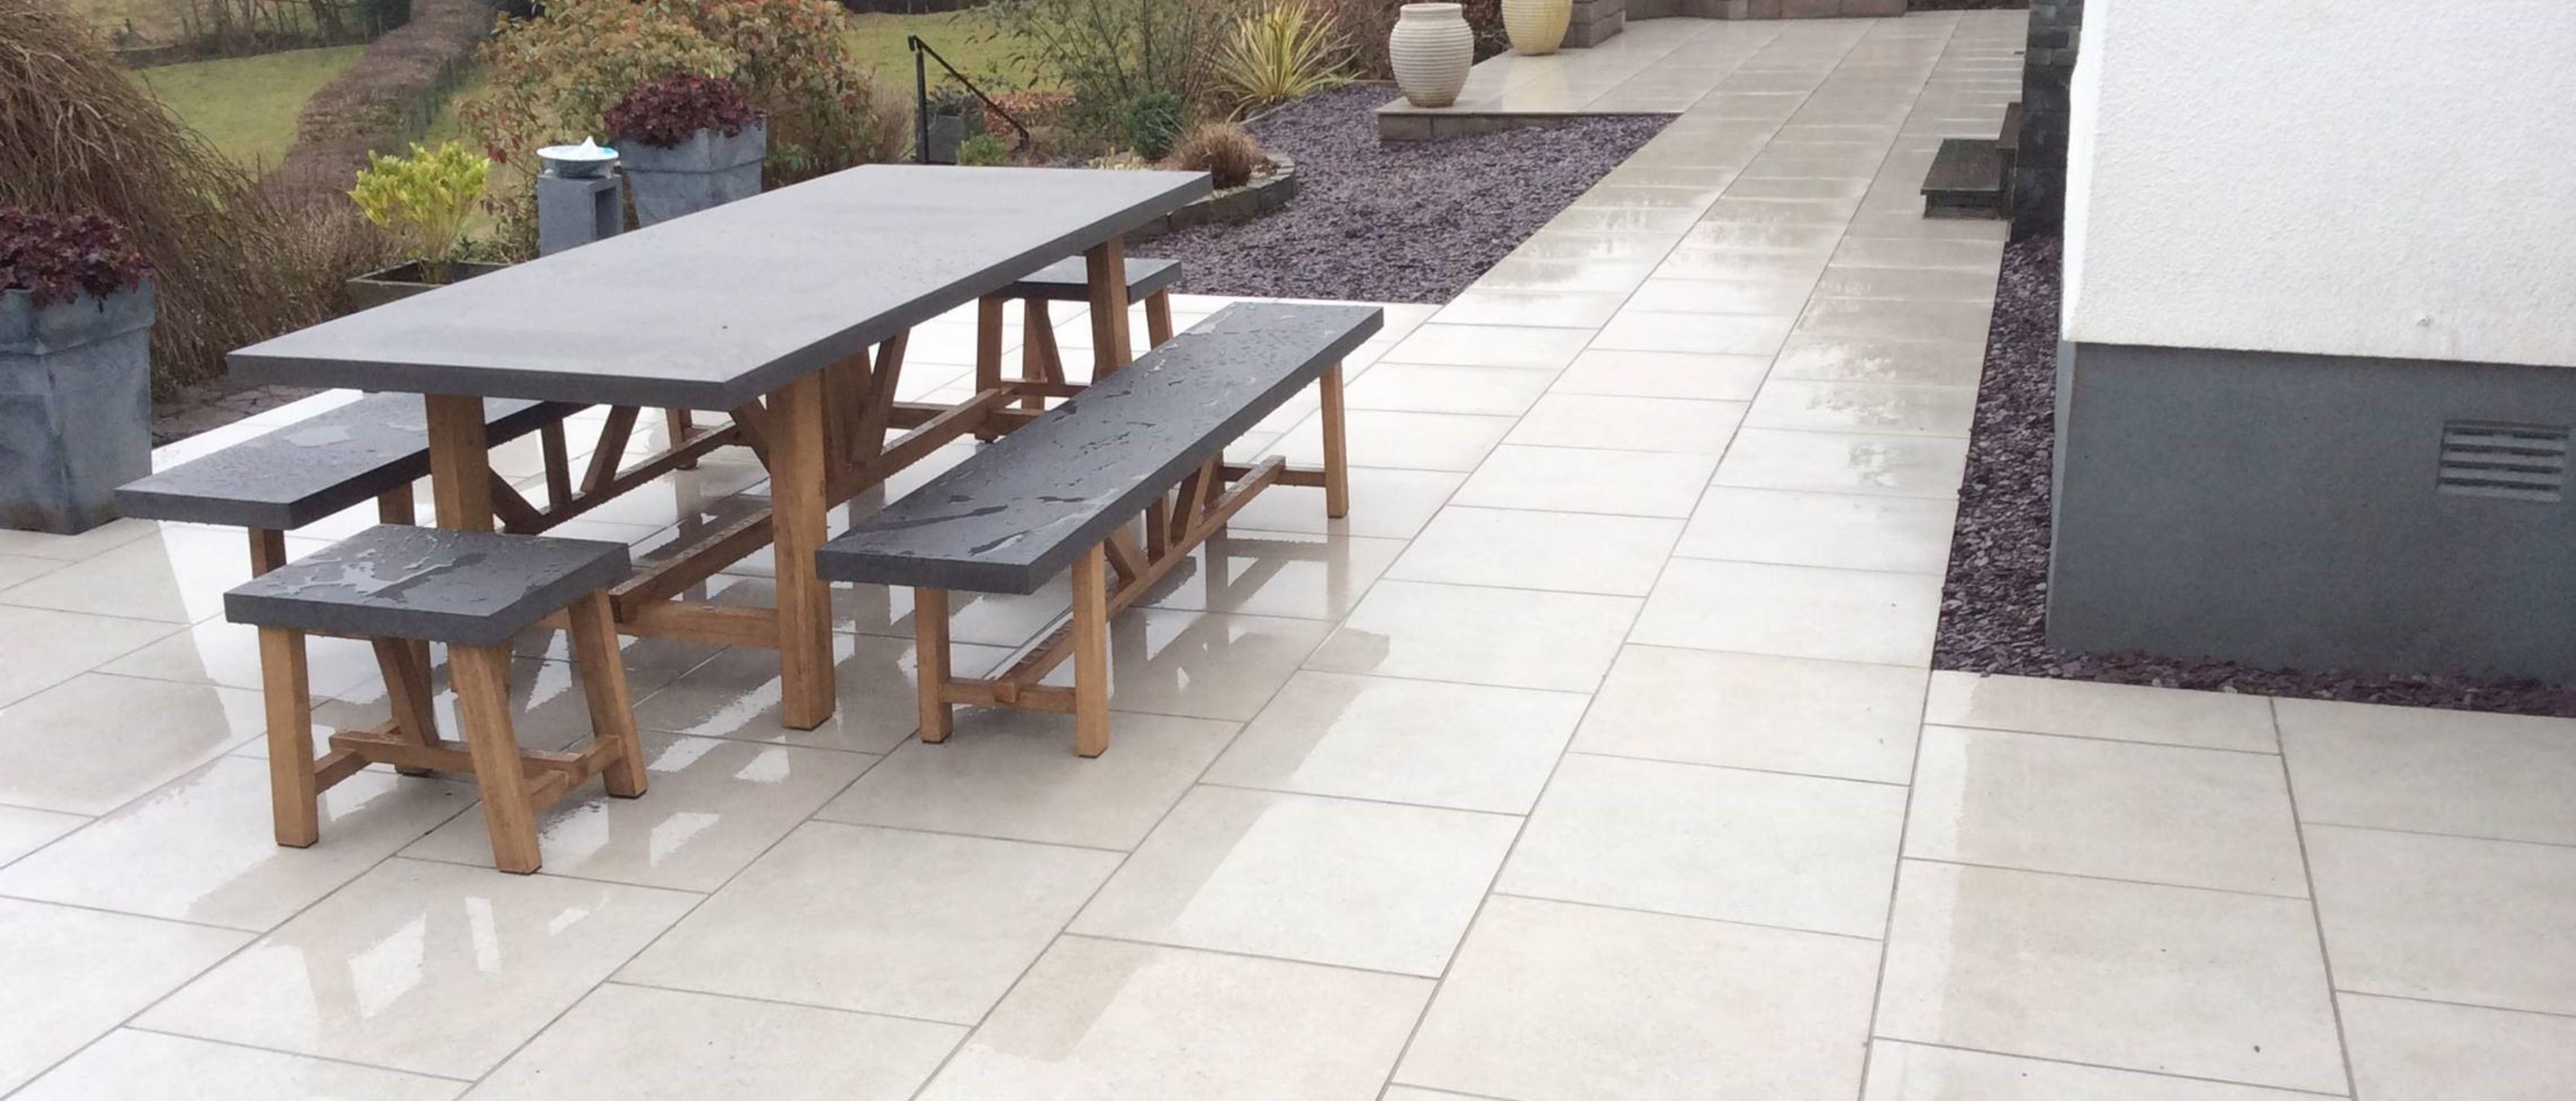 Porcelain Paving: The Villa Collection